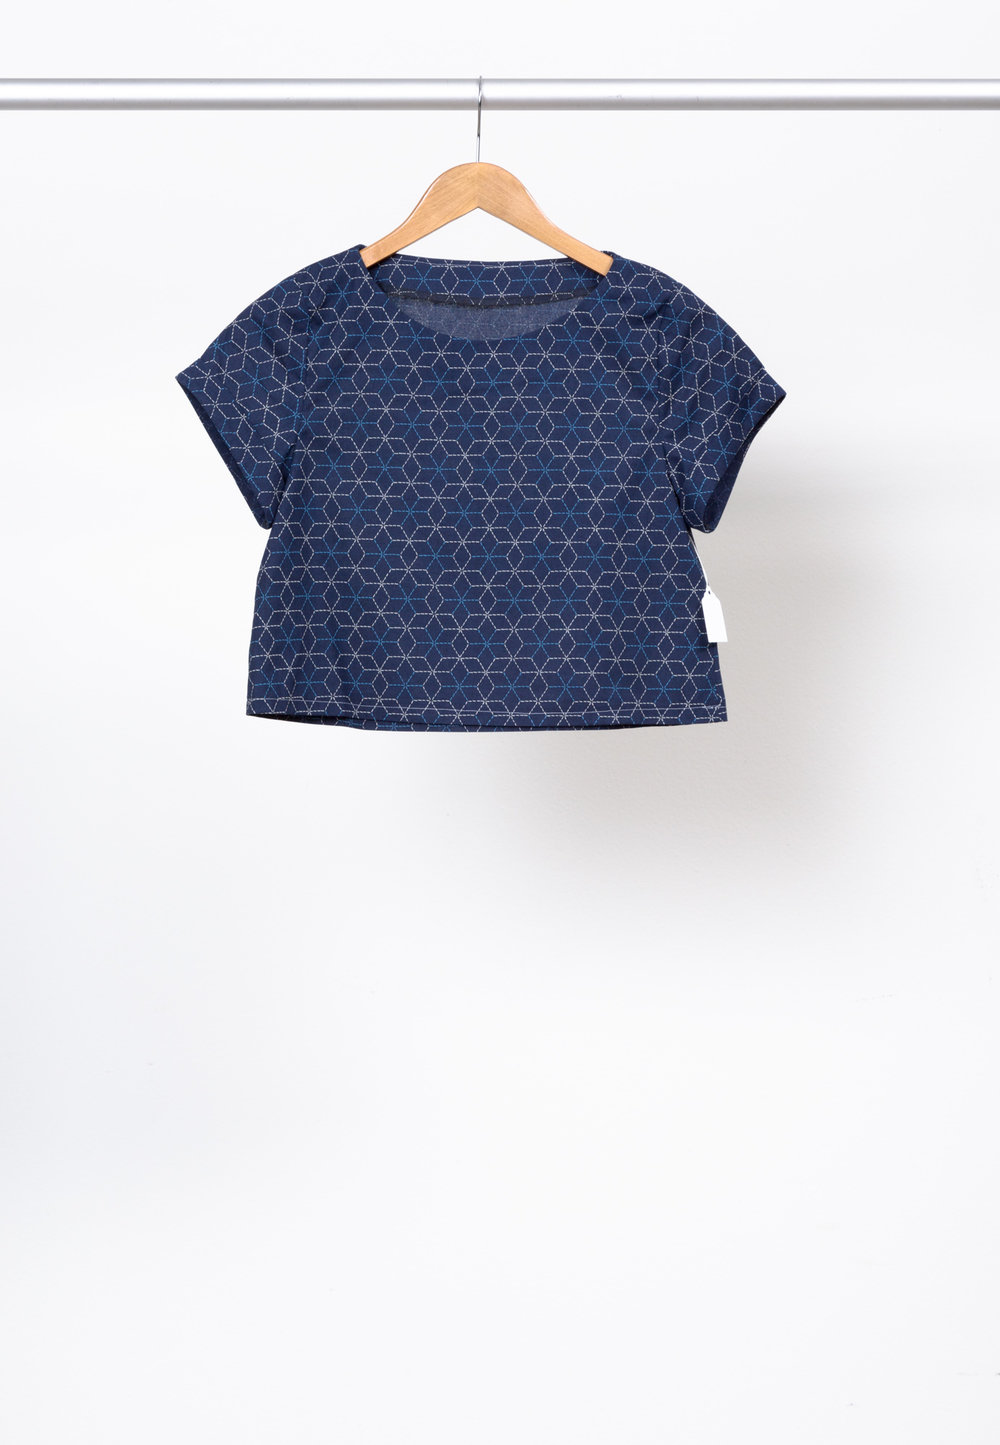 INARI CROP TEE   BY   NAMED CLOTHING ,  SEVENBERRY: KASURI